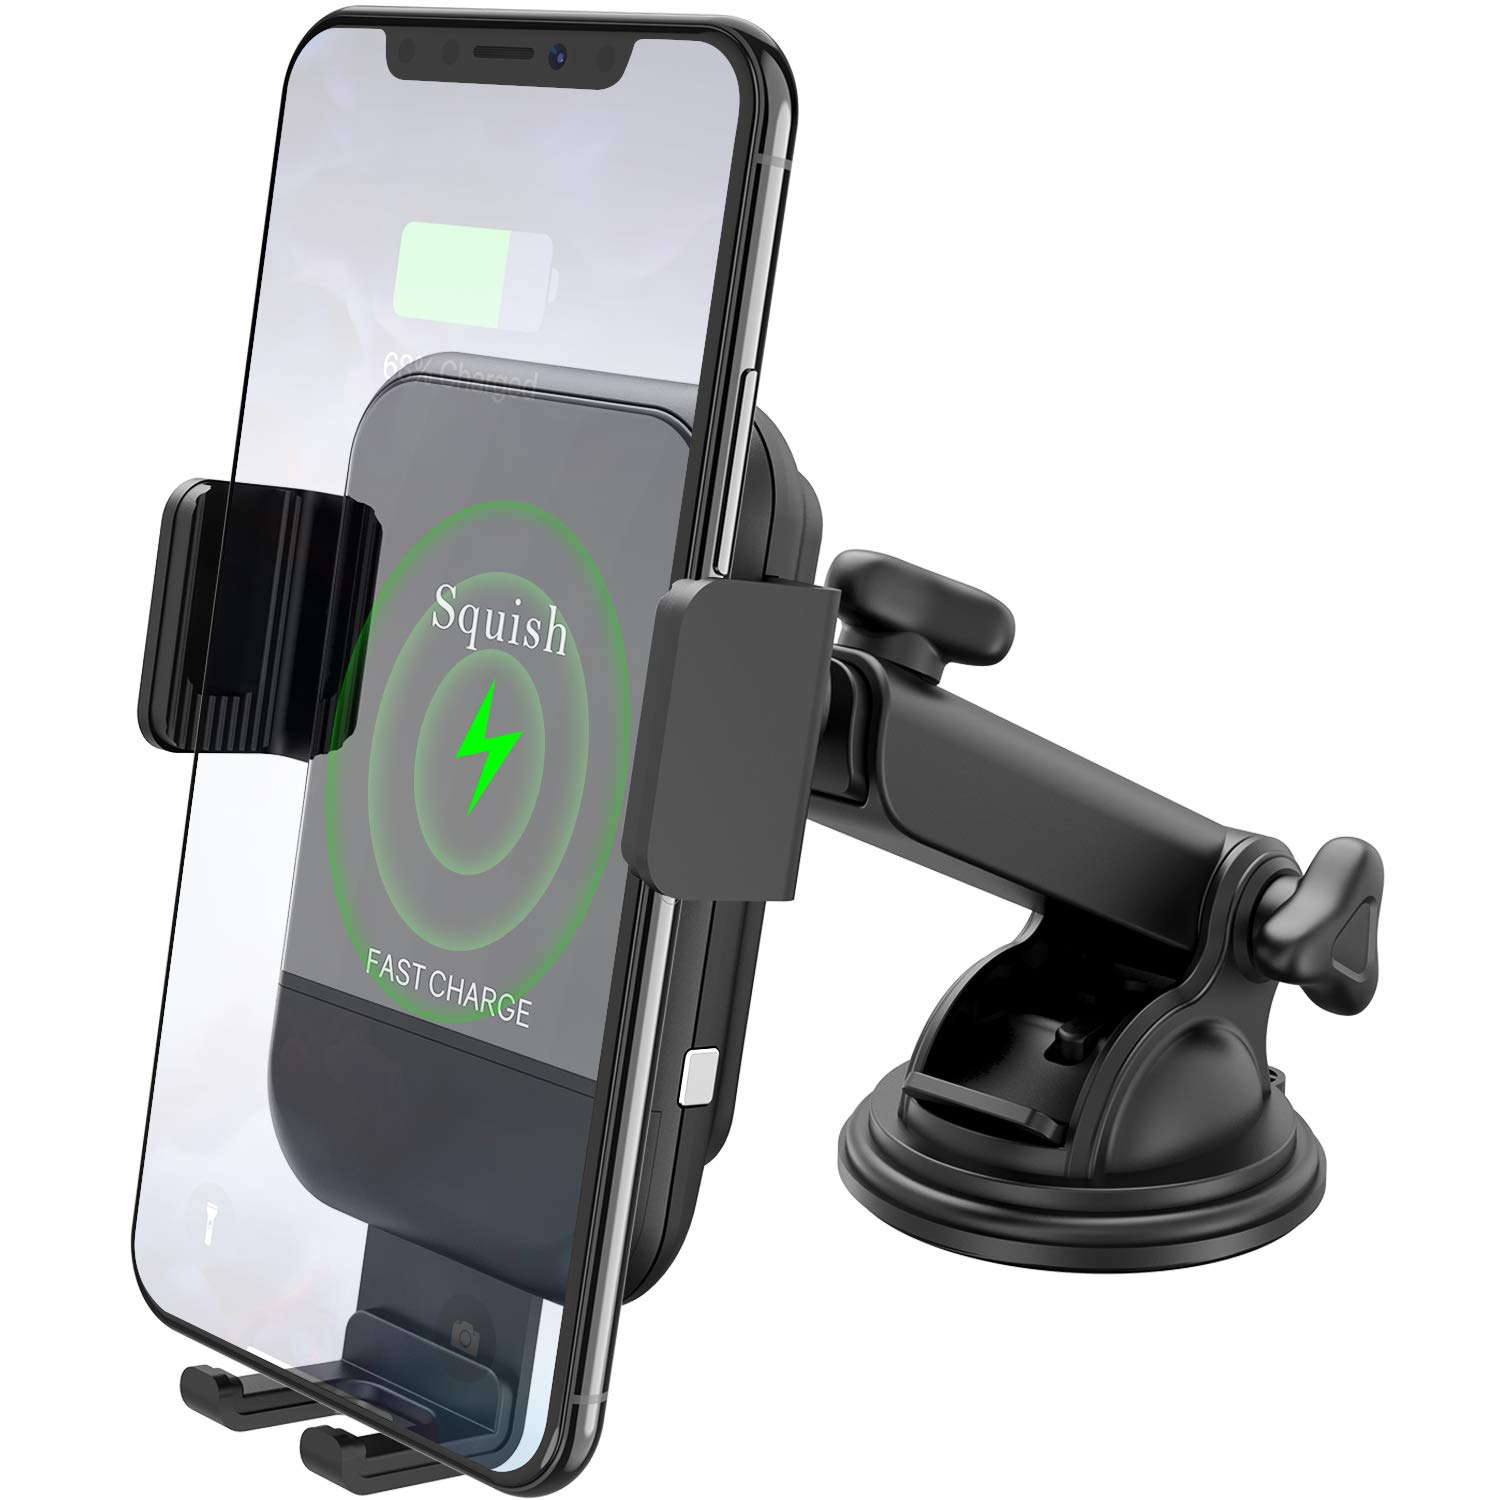 Squish Qi Wireless Charging Car Mount Air Vent Car Phone Mount Charger Phone Holder for iPhone Xs Max//XS//XR//X//8Plus//8 Samsung S9//S9+//S8//S8+//Note9//Note8 Wireless Car Charger